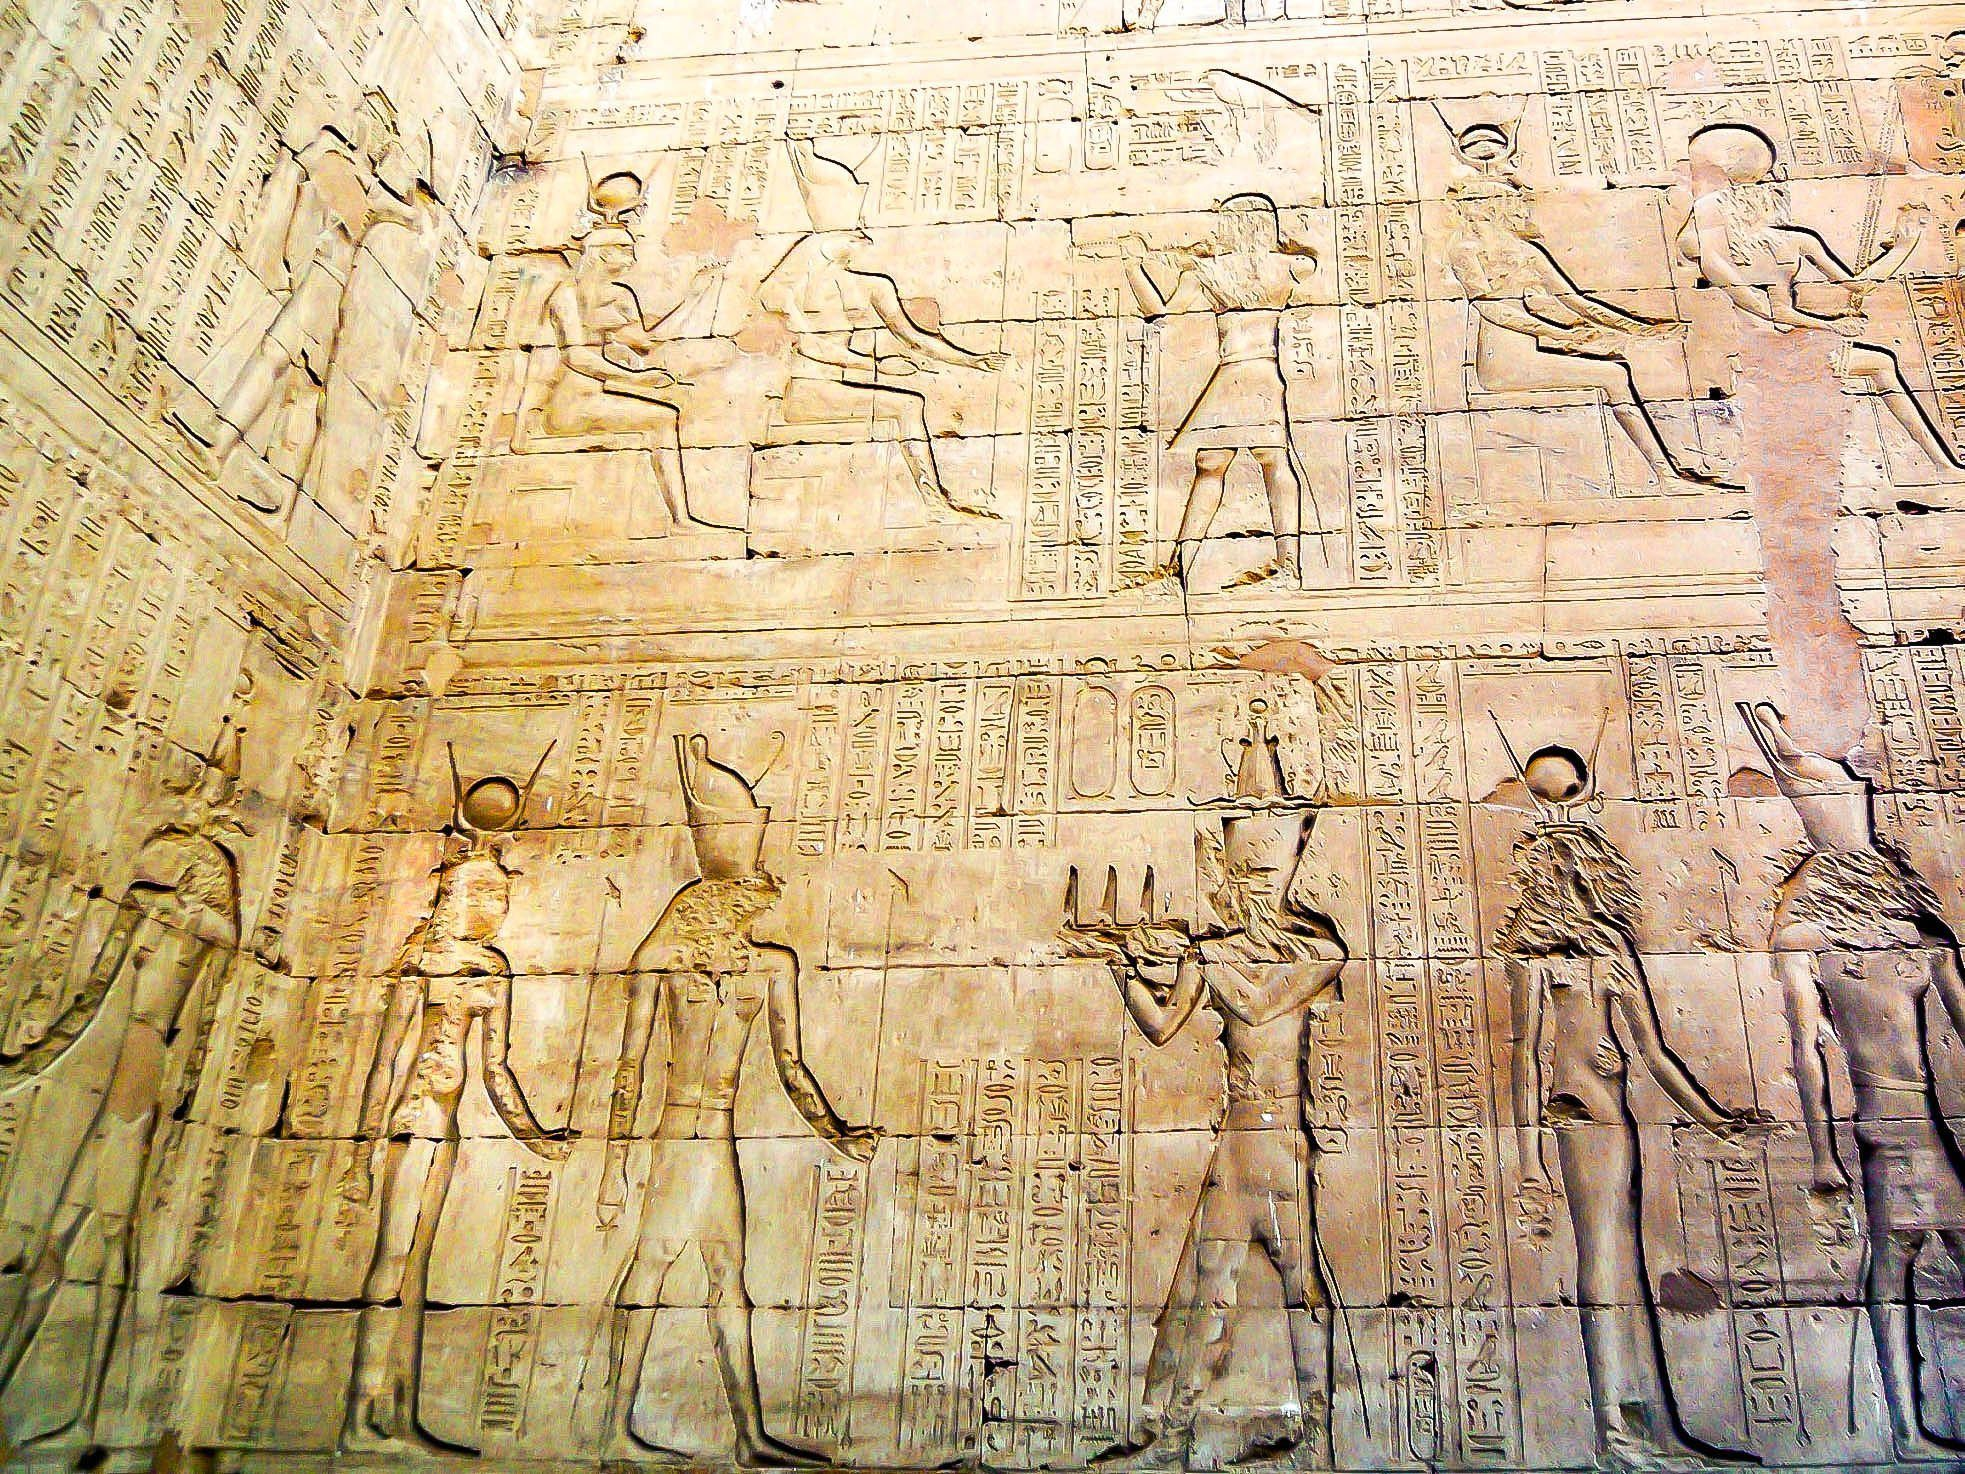 Carvings and reliefs in the Edfu Temple